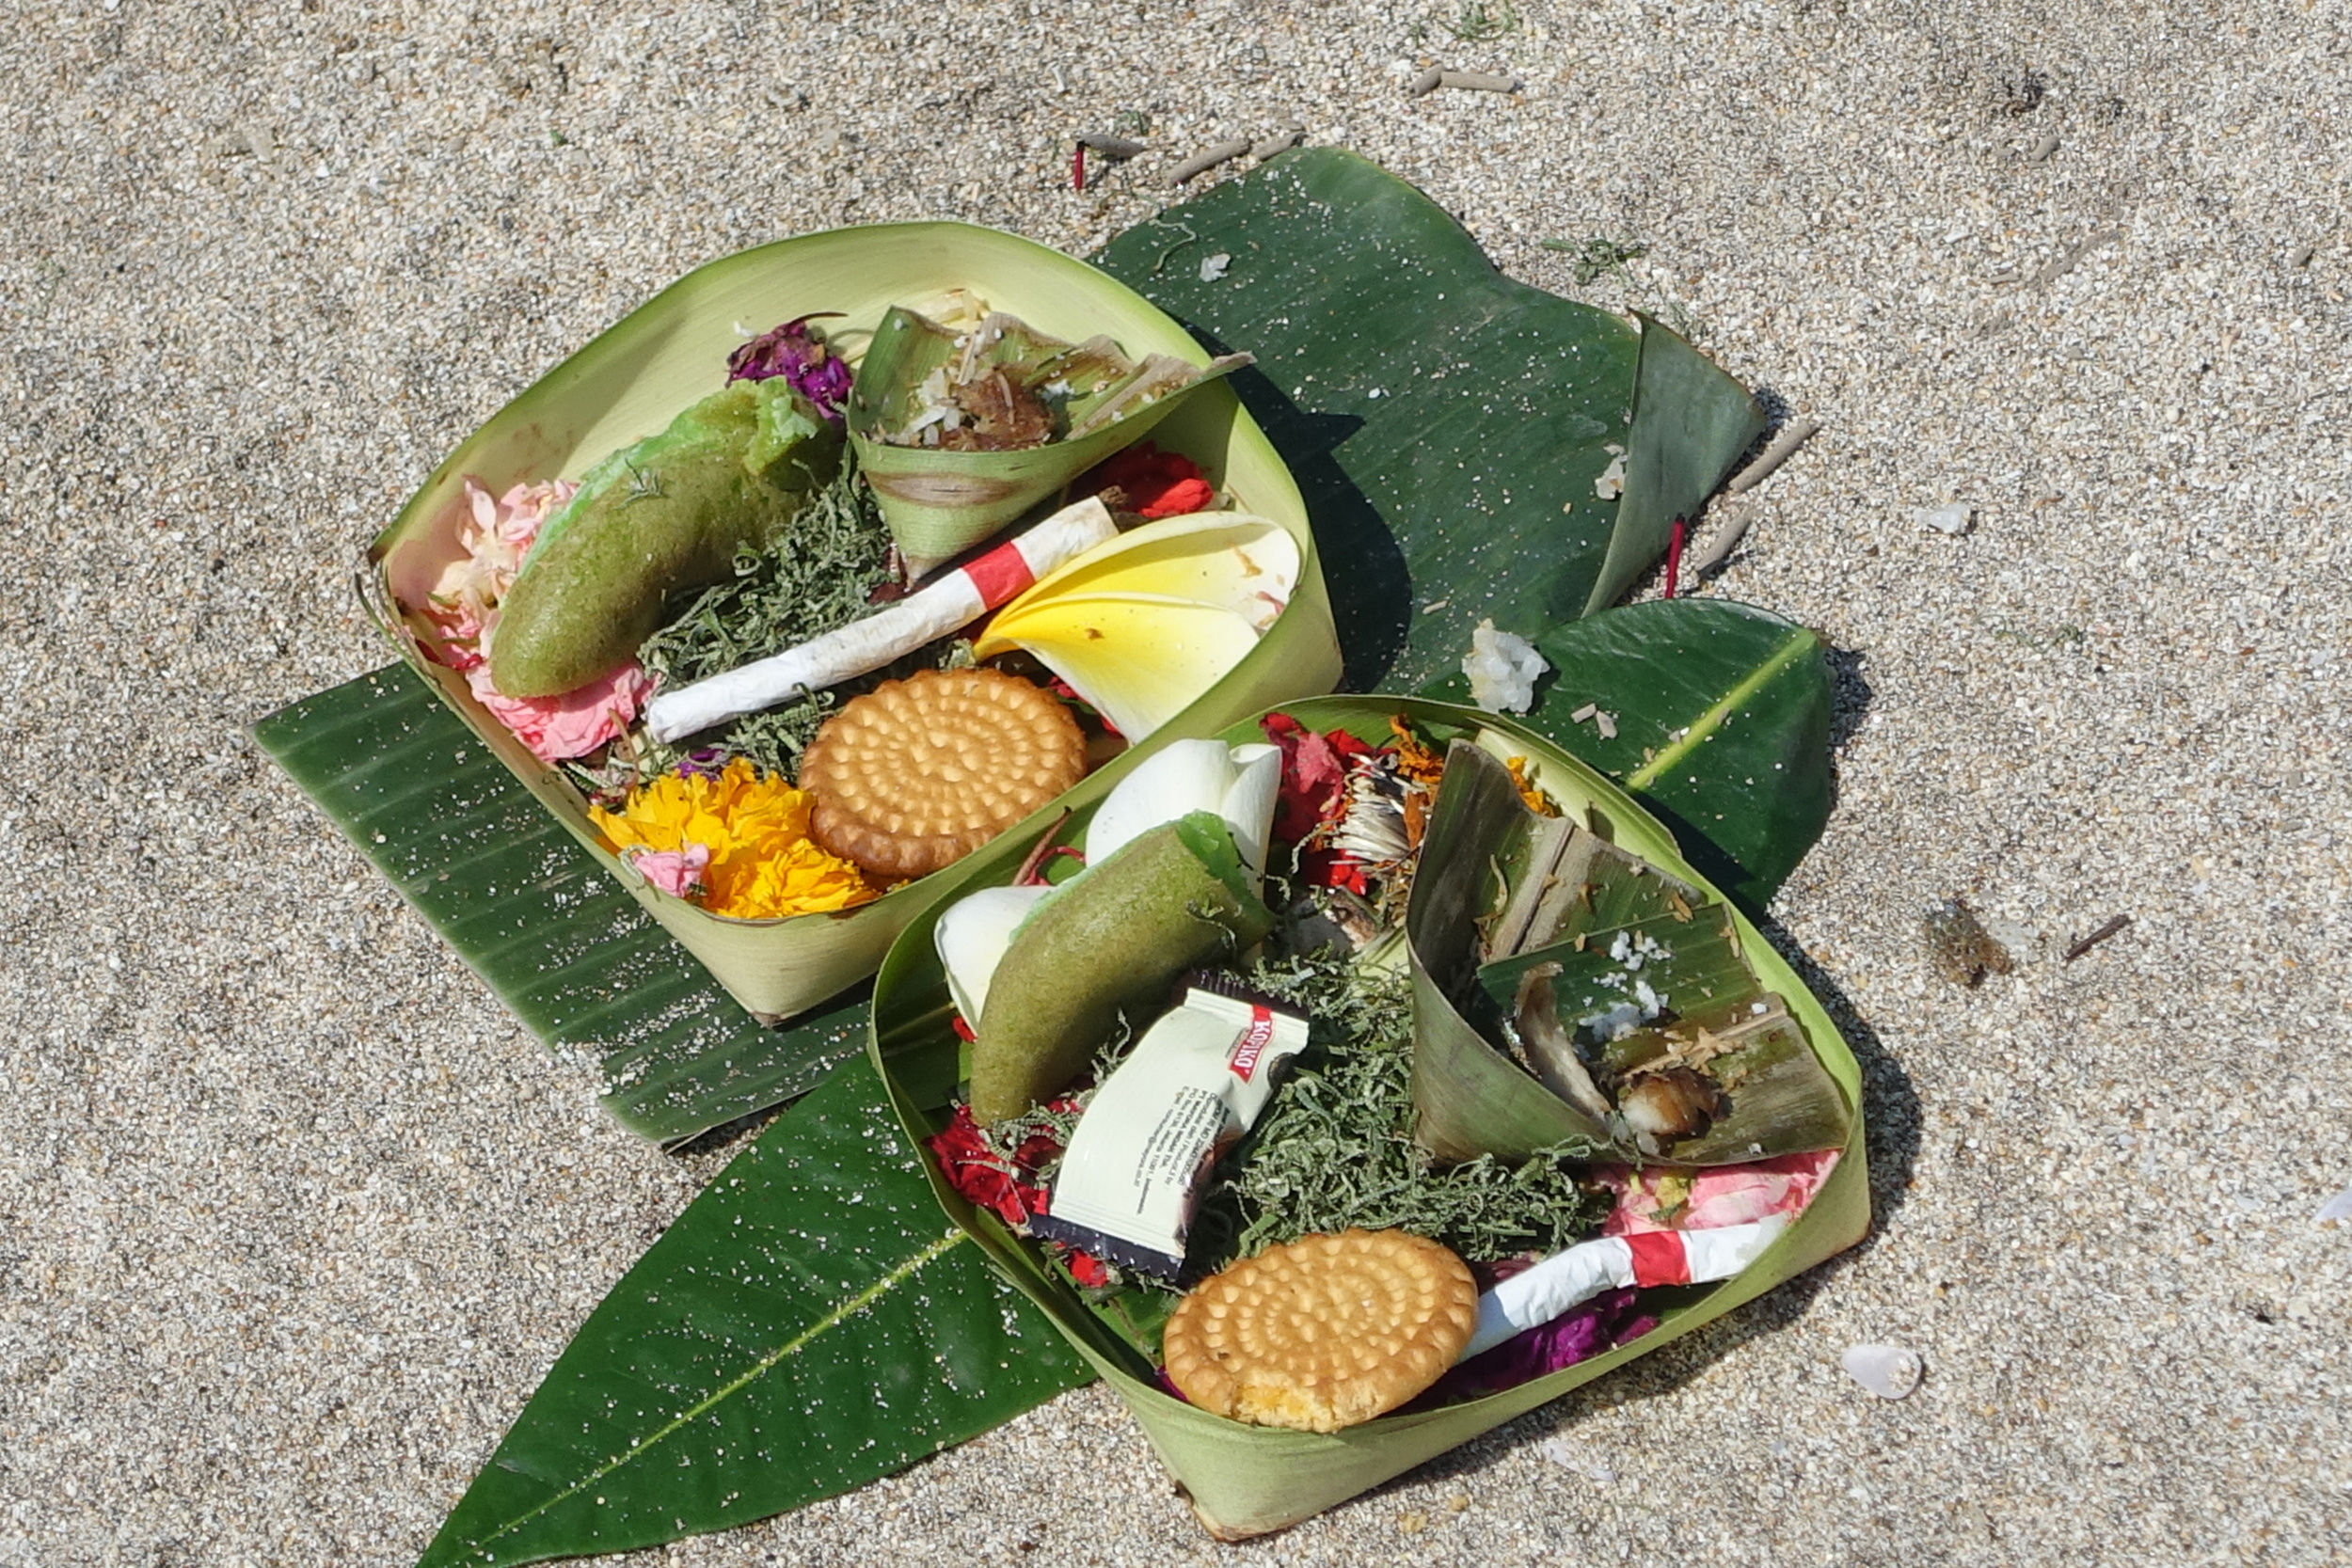 Some of the hundreds of offerings that can be seen all along the beaches, streets, and outside homes and businesses.